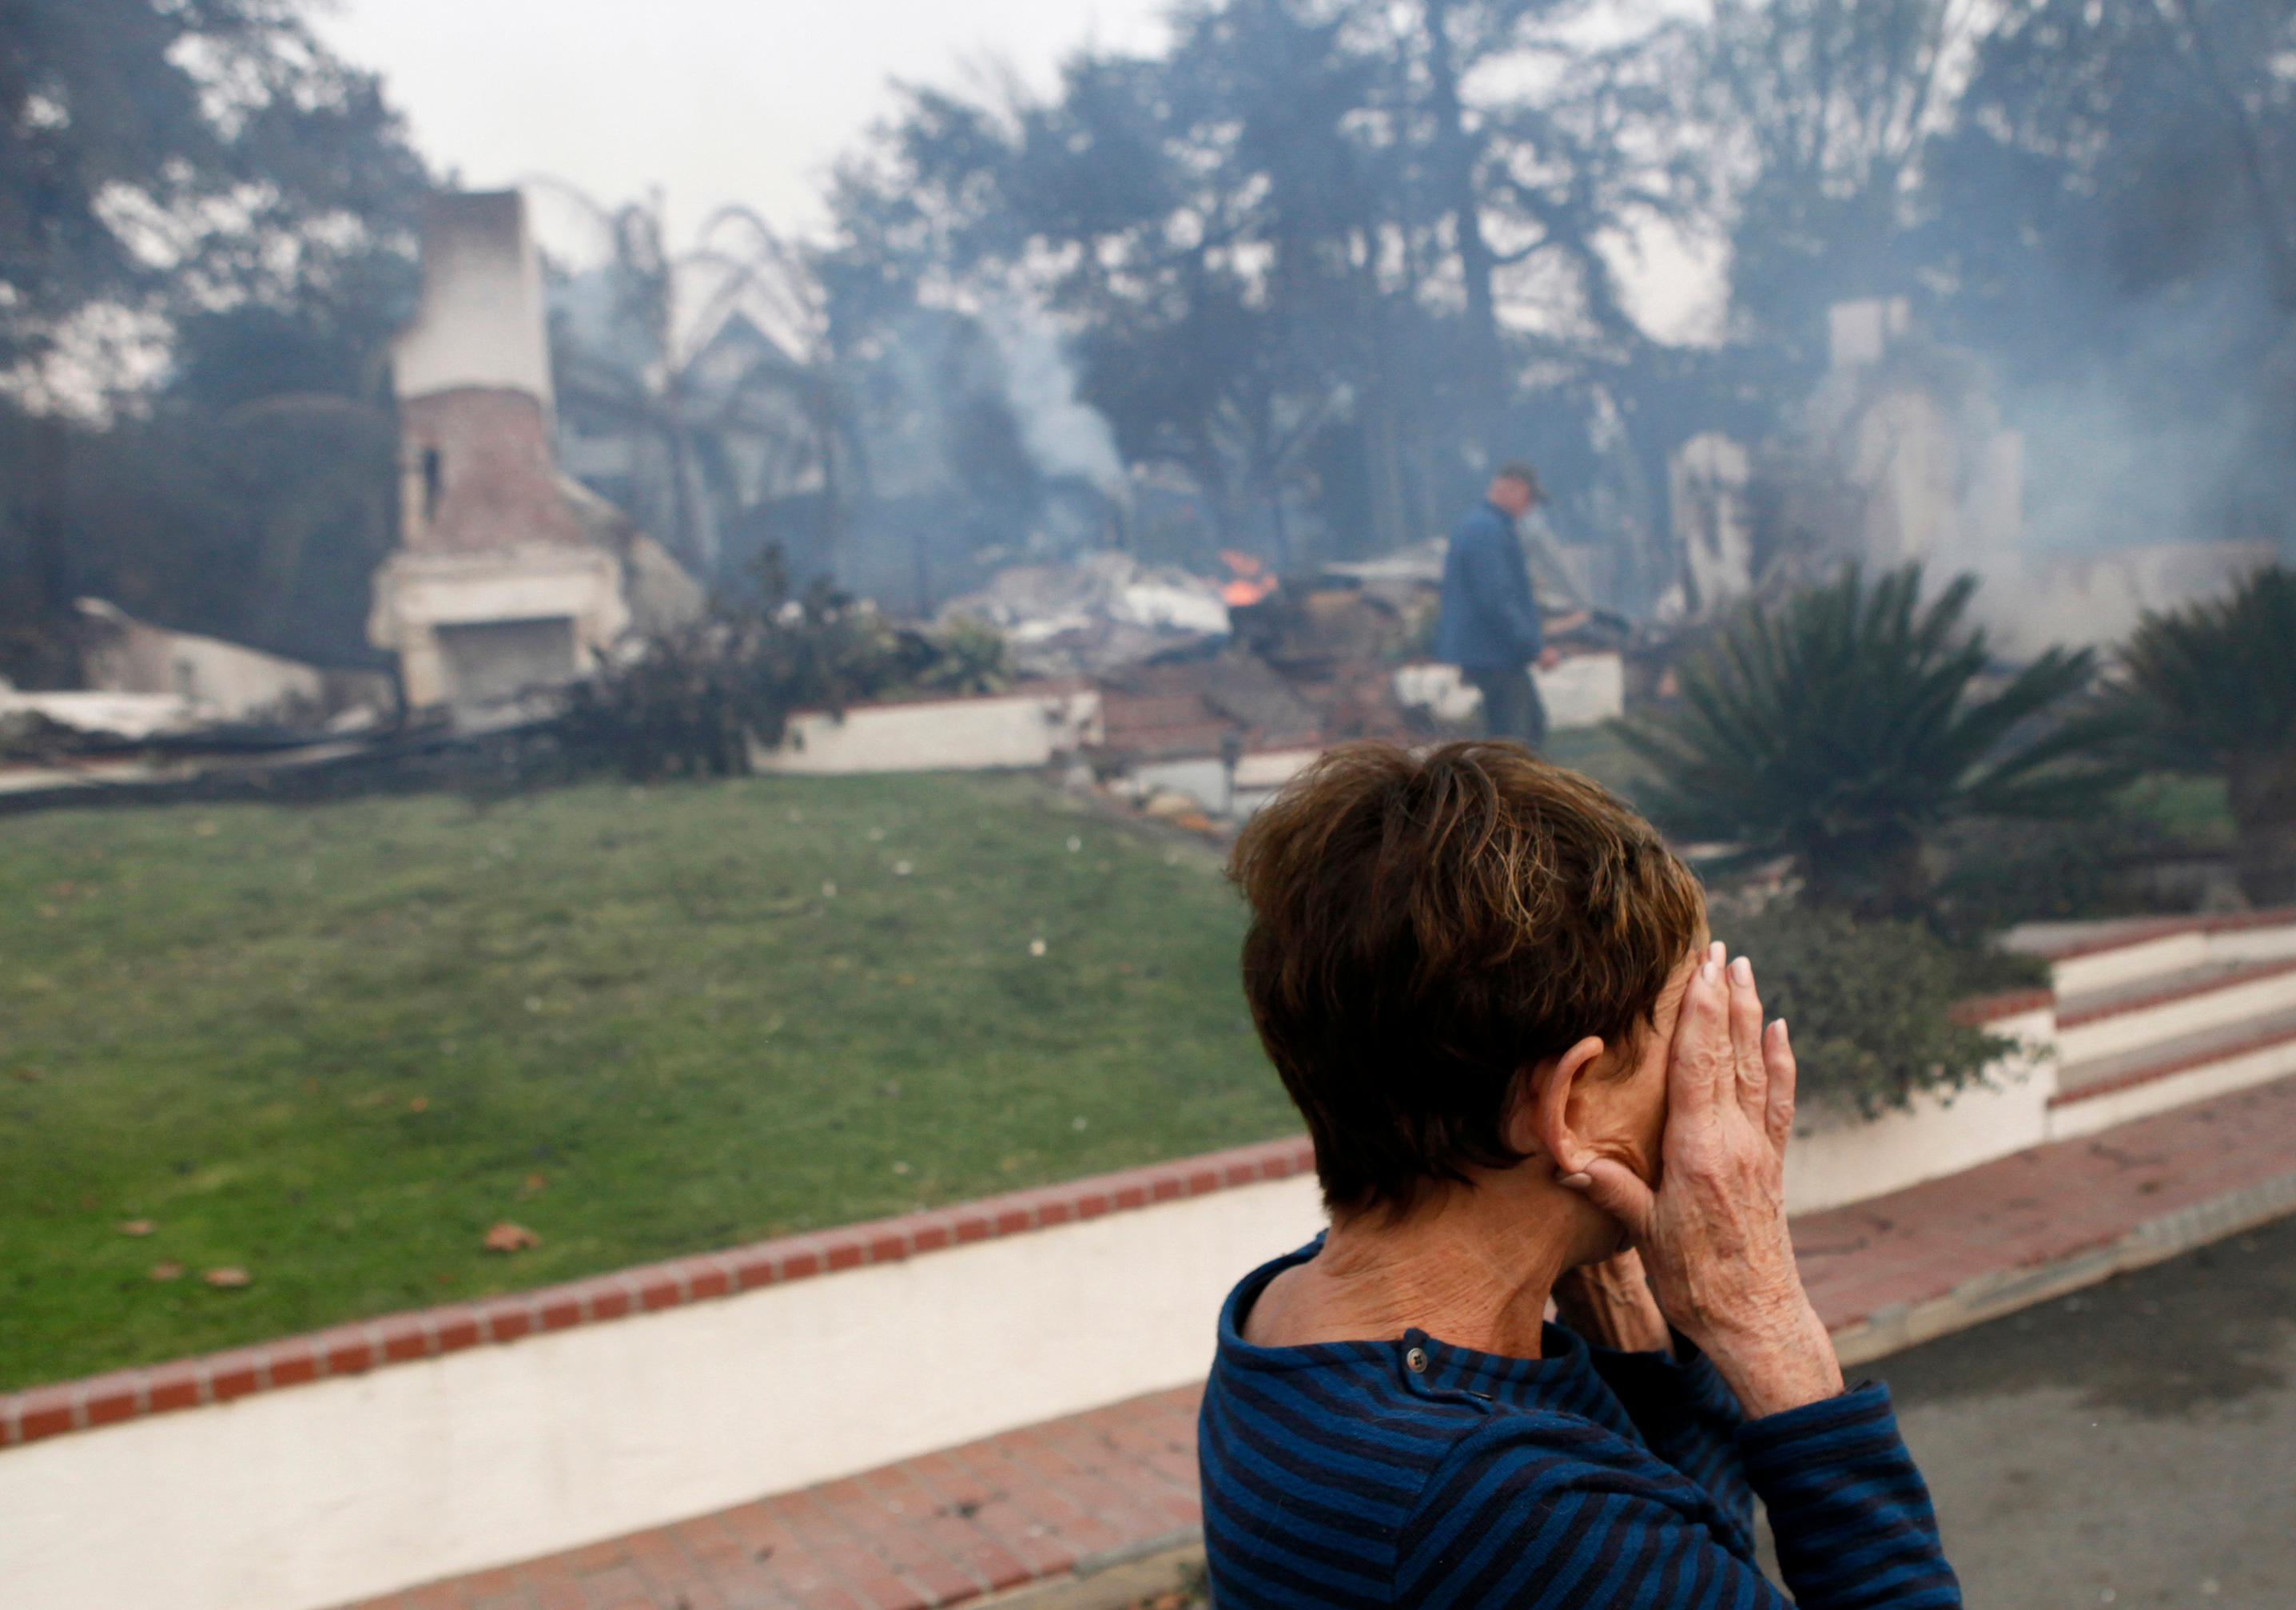 A woman cries as she covers her face near her destroyed home a wildfire swept through Ventura, Calif., Tuesday, Dec. 5, 2017. (Daniel Dreifuss via AP)